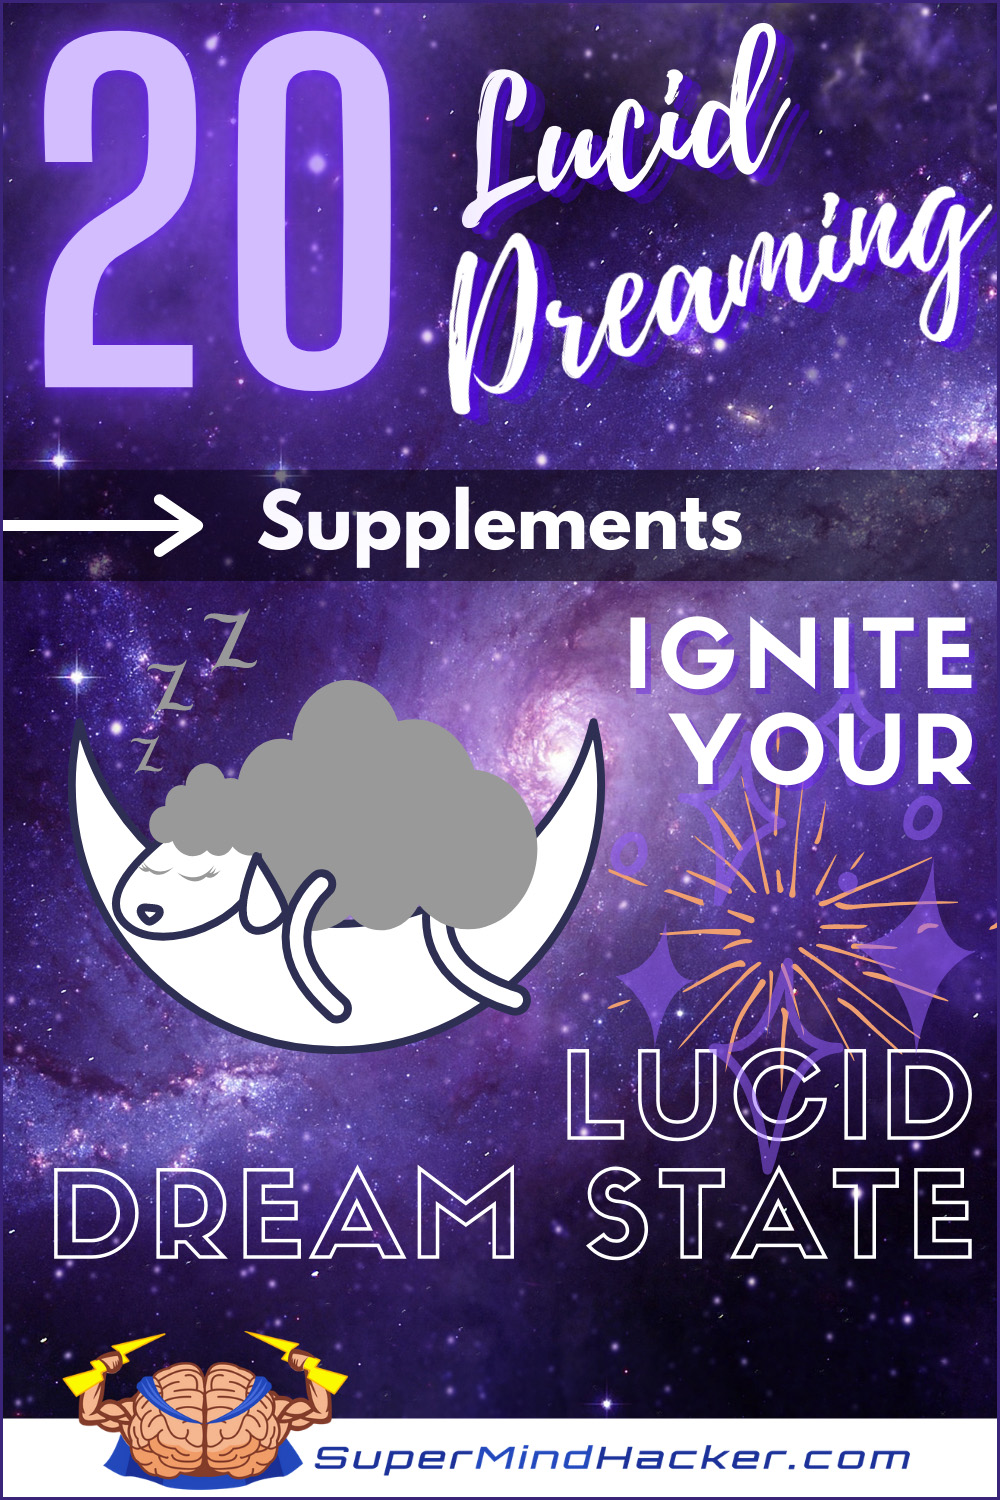 20 Lucid Dreaming Supplements to Vividly Ignite Your Lucid Dream State!